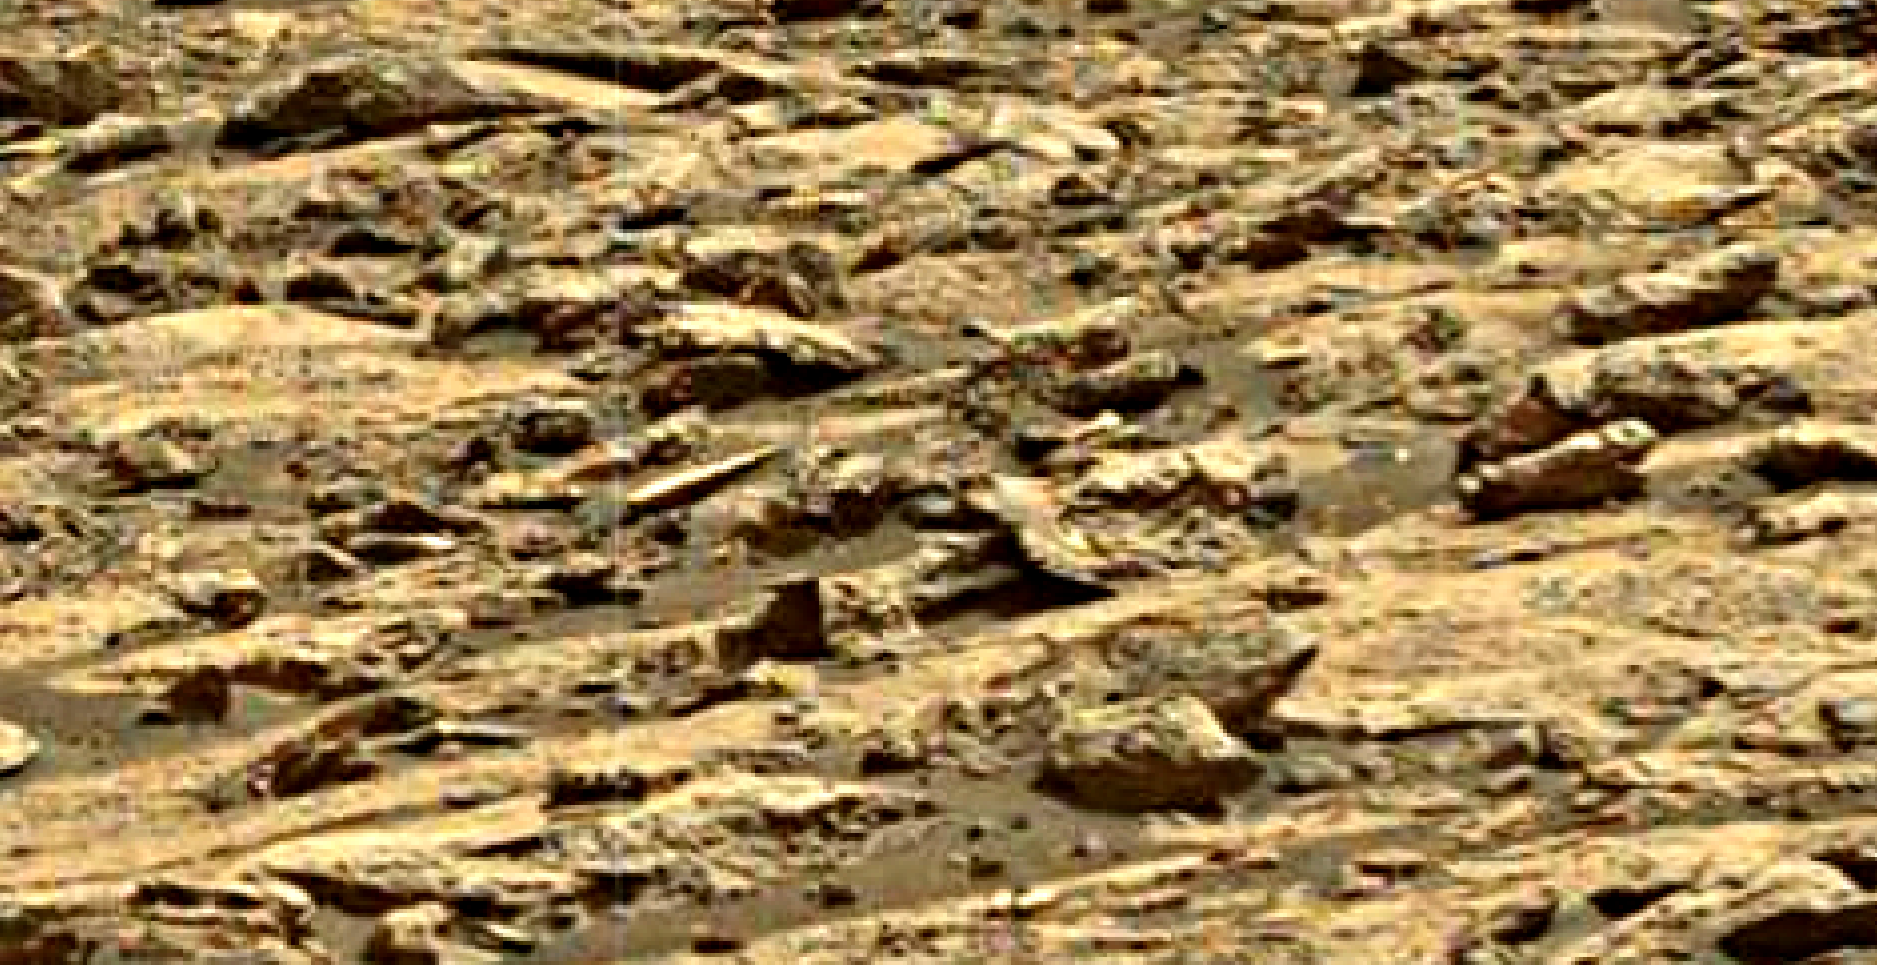 mars-sol-1452-anomaly-artifacts-4-was-life-on-mars